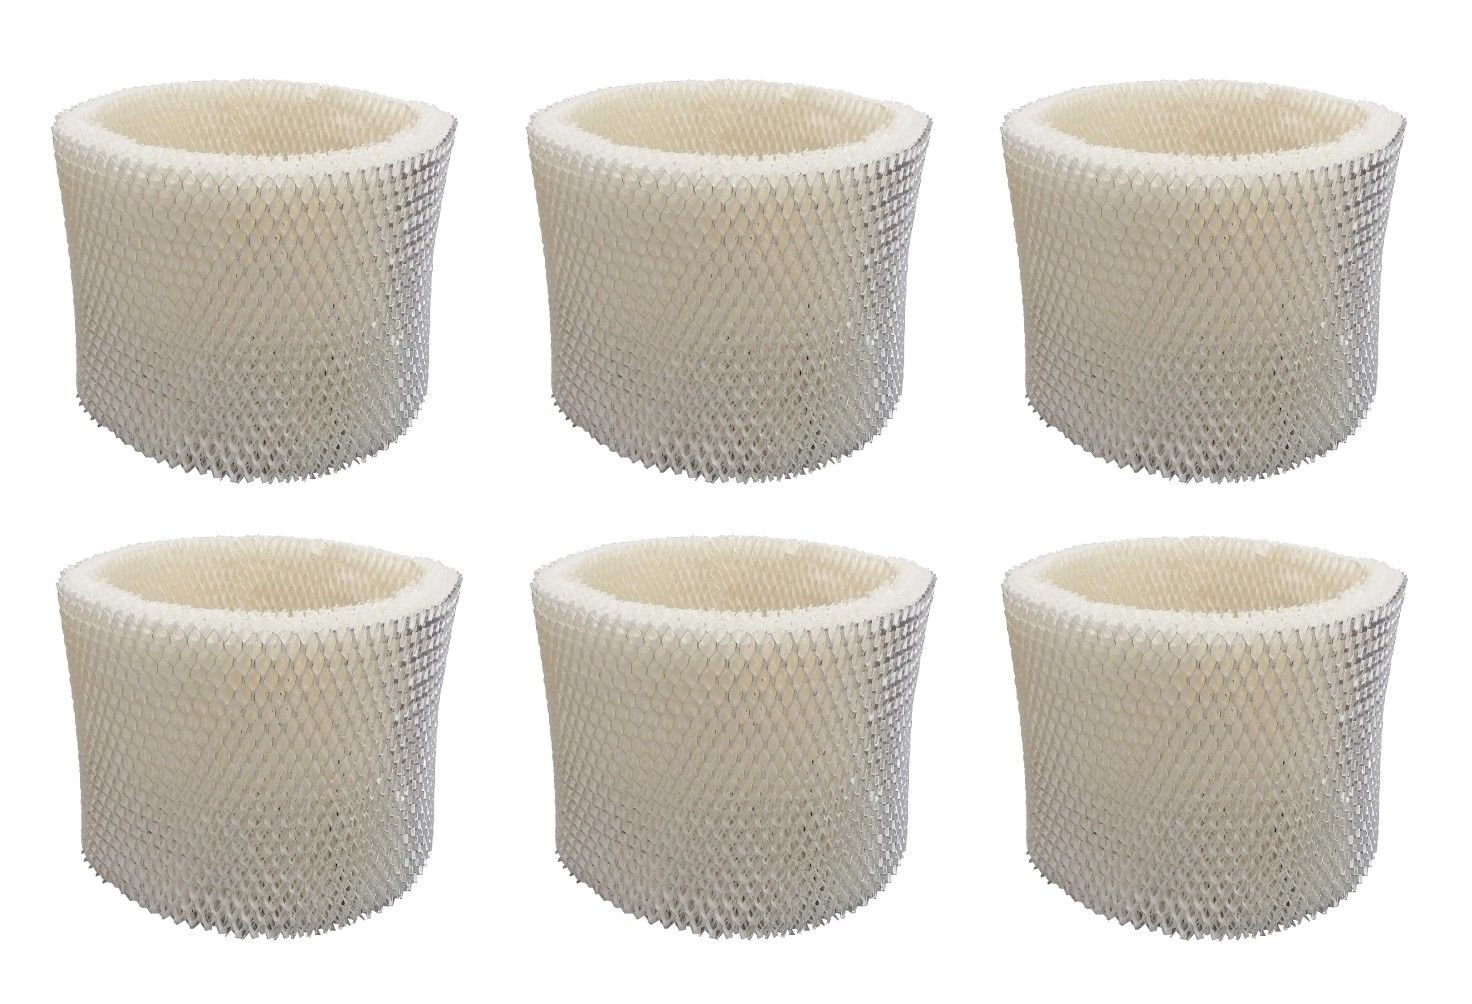 Tosva 6 PACK Replacement Wicking Humidifier Filter for Honeywell HC-14V1 Filter E